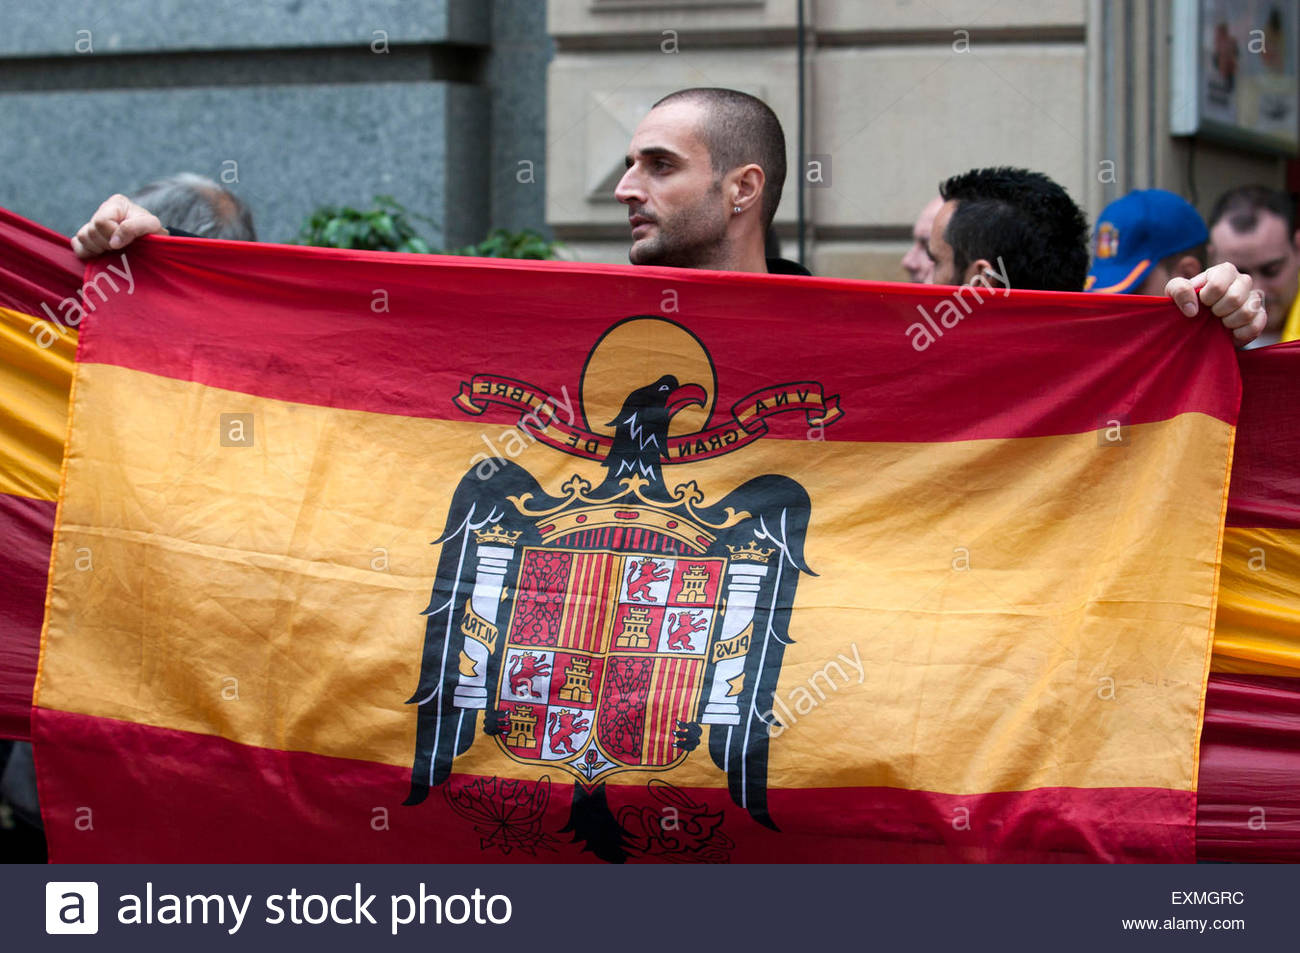 Barcelona, Spain. 12th Oct, 2014. Demonstrators doing the fascist salute during the Spanish Ultra Nationalism speech. - Stock Image